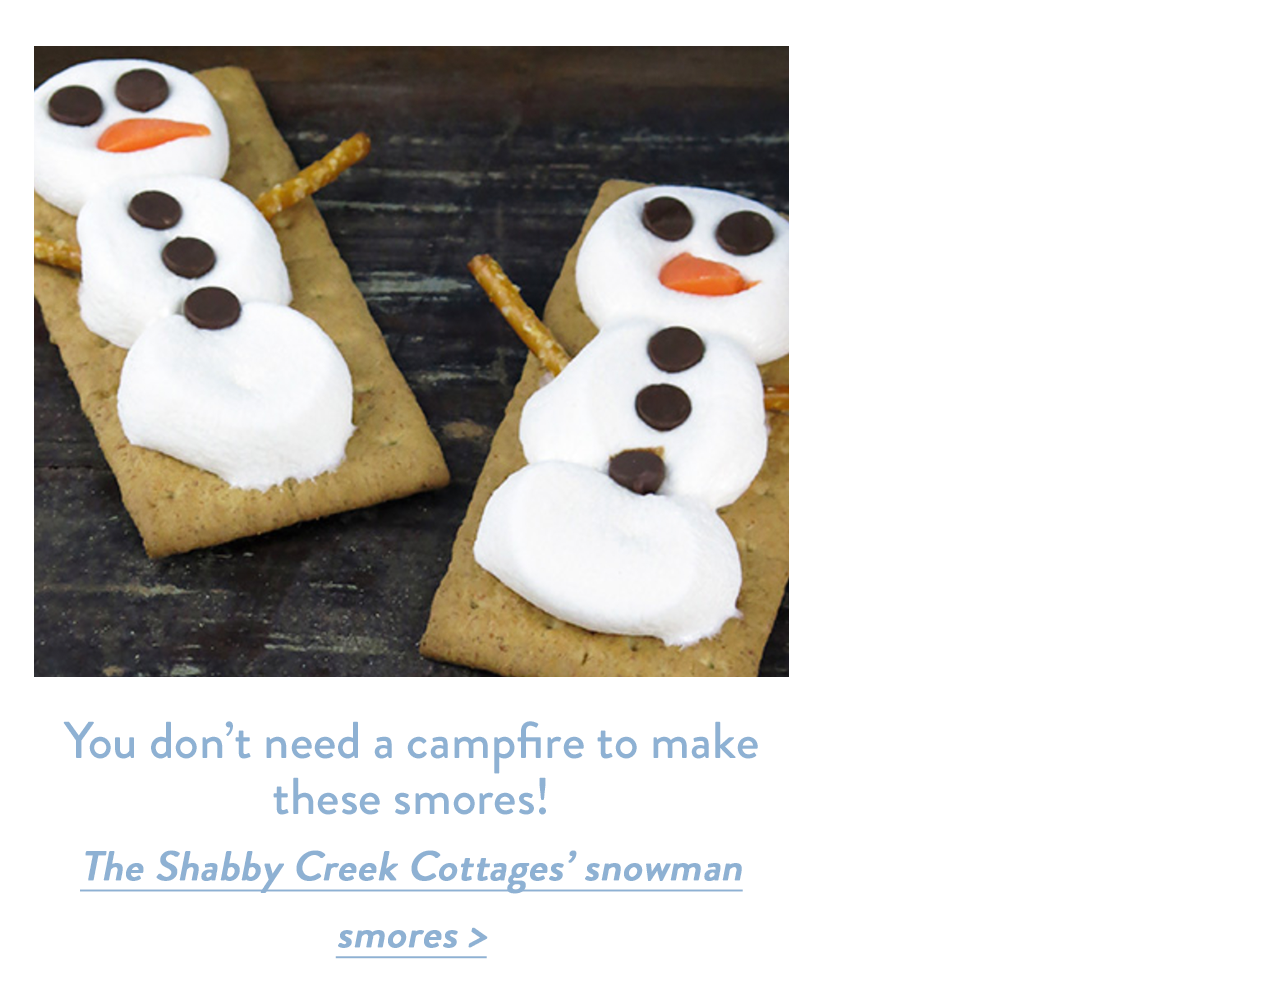 You don't need a campfire to make these smores!